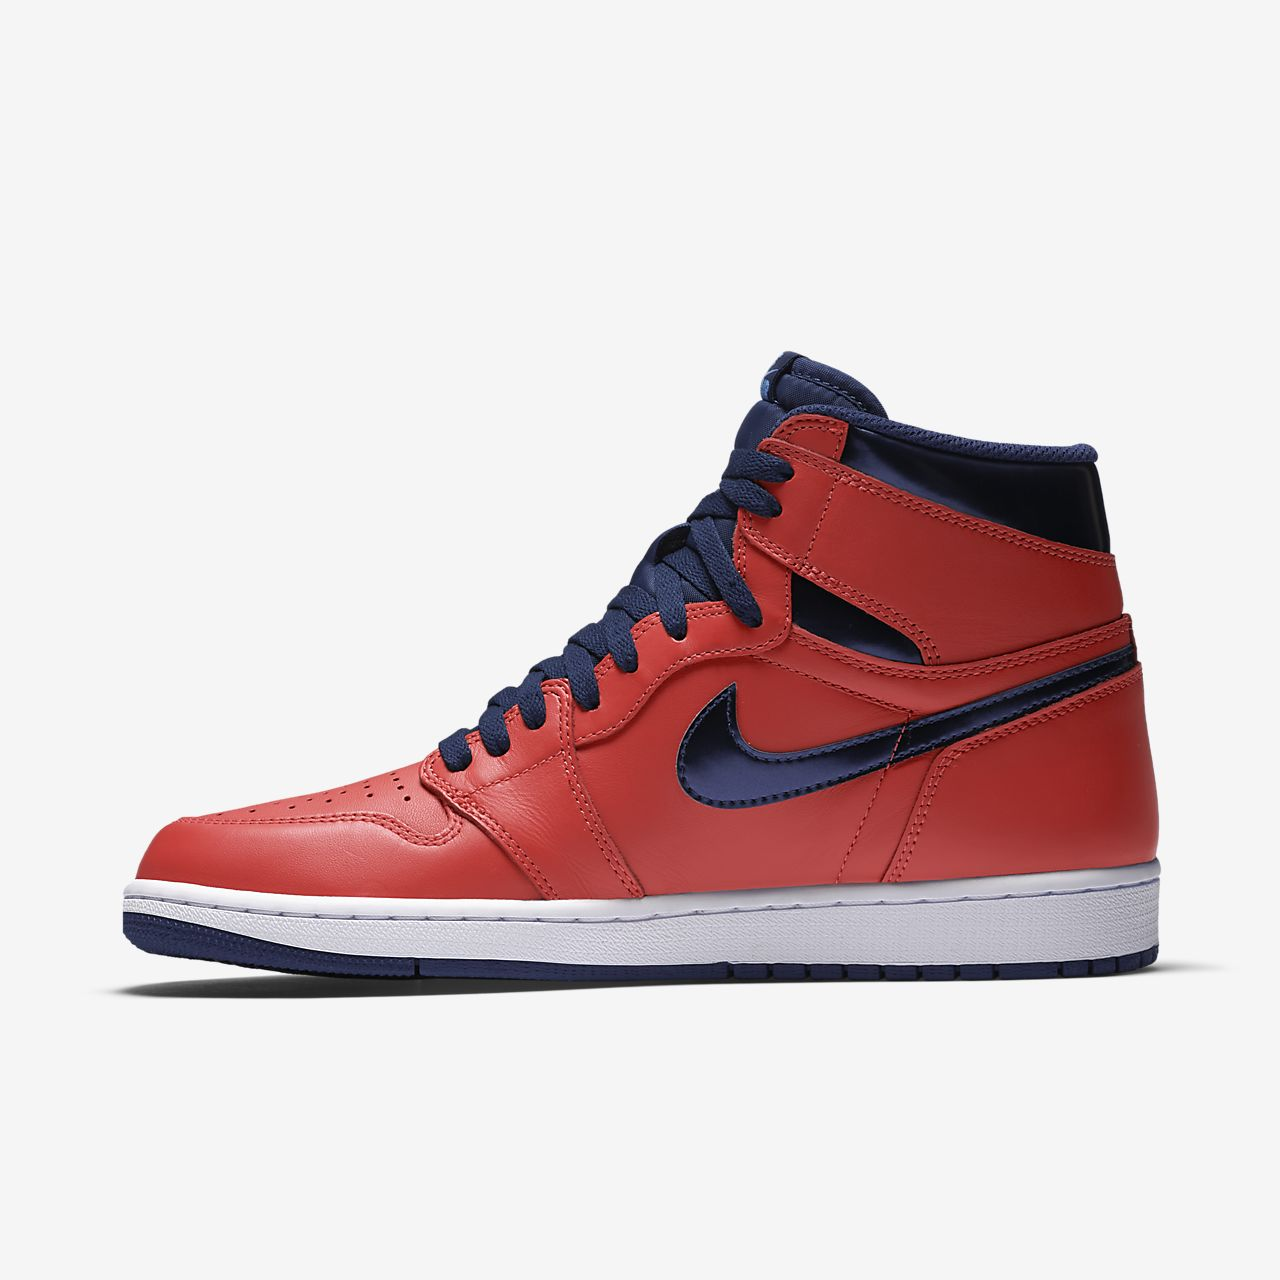 reputable site a23ef 44ab1 ... Air Jordan 1 Retro High OG Schuh